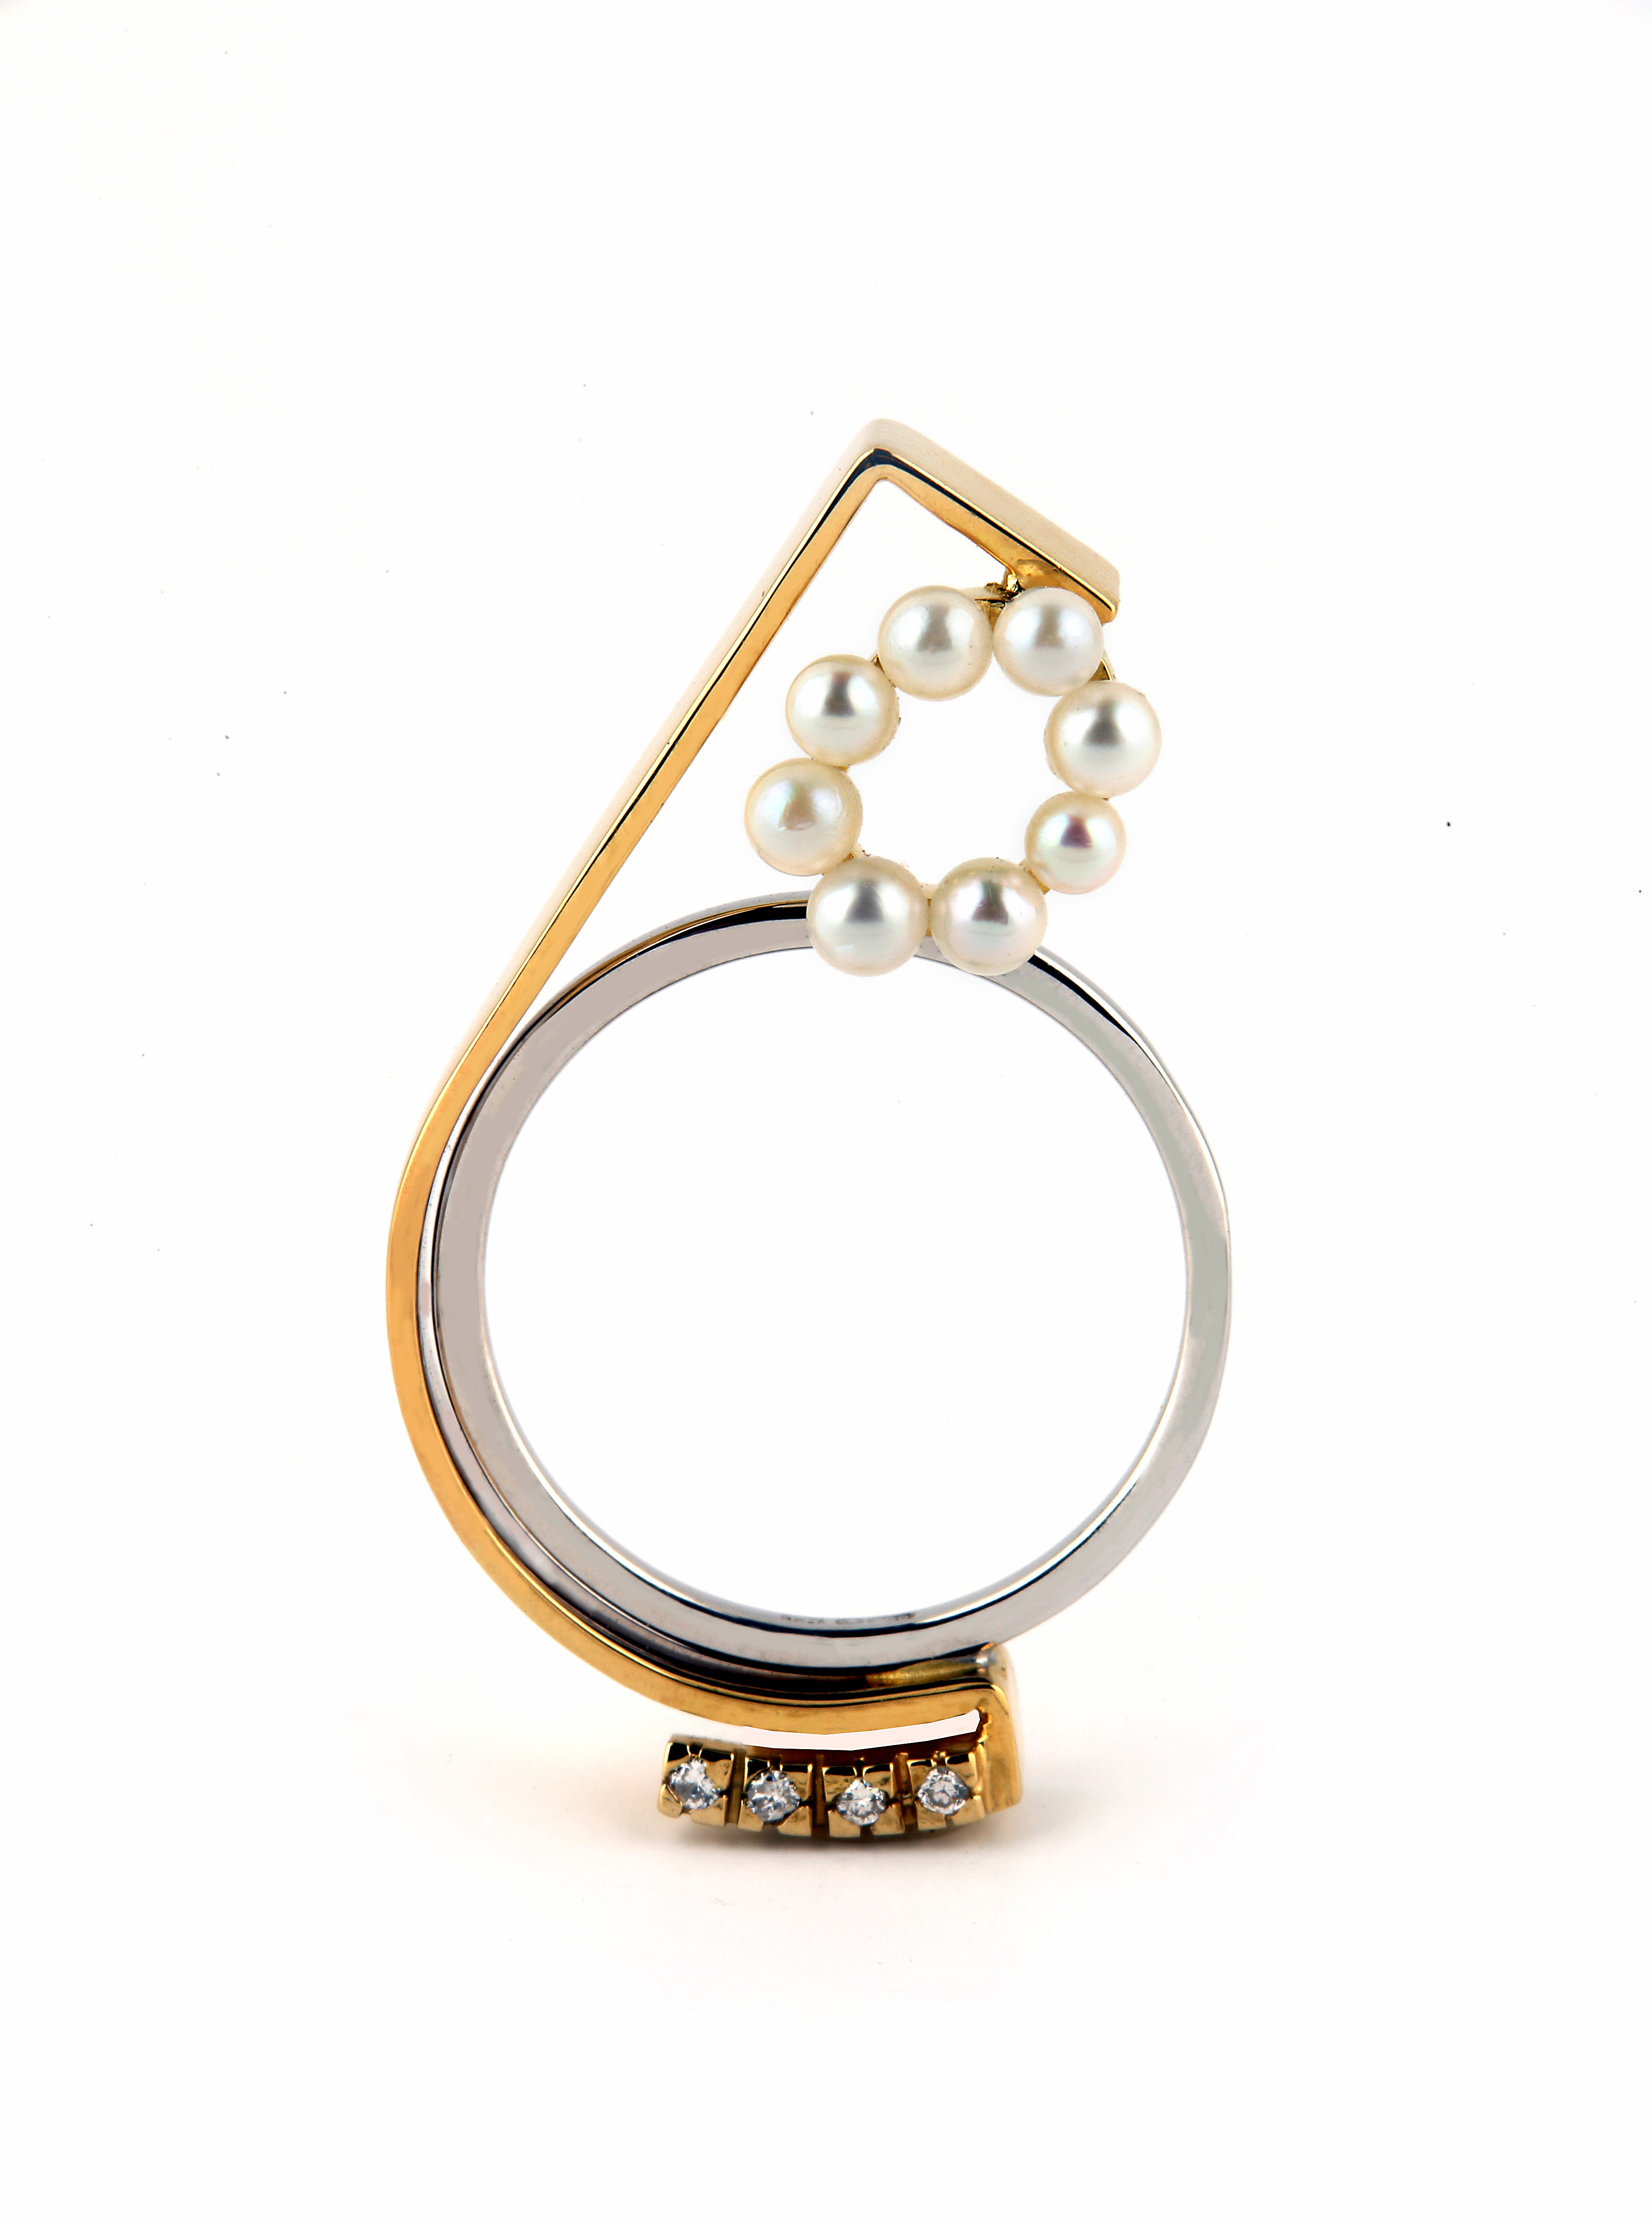 Rind in 18kt gold with pearls & brilliant diamonds